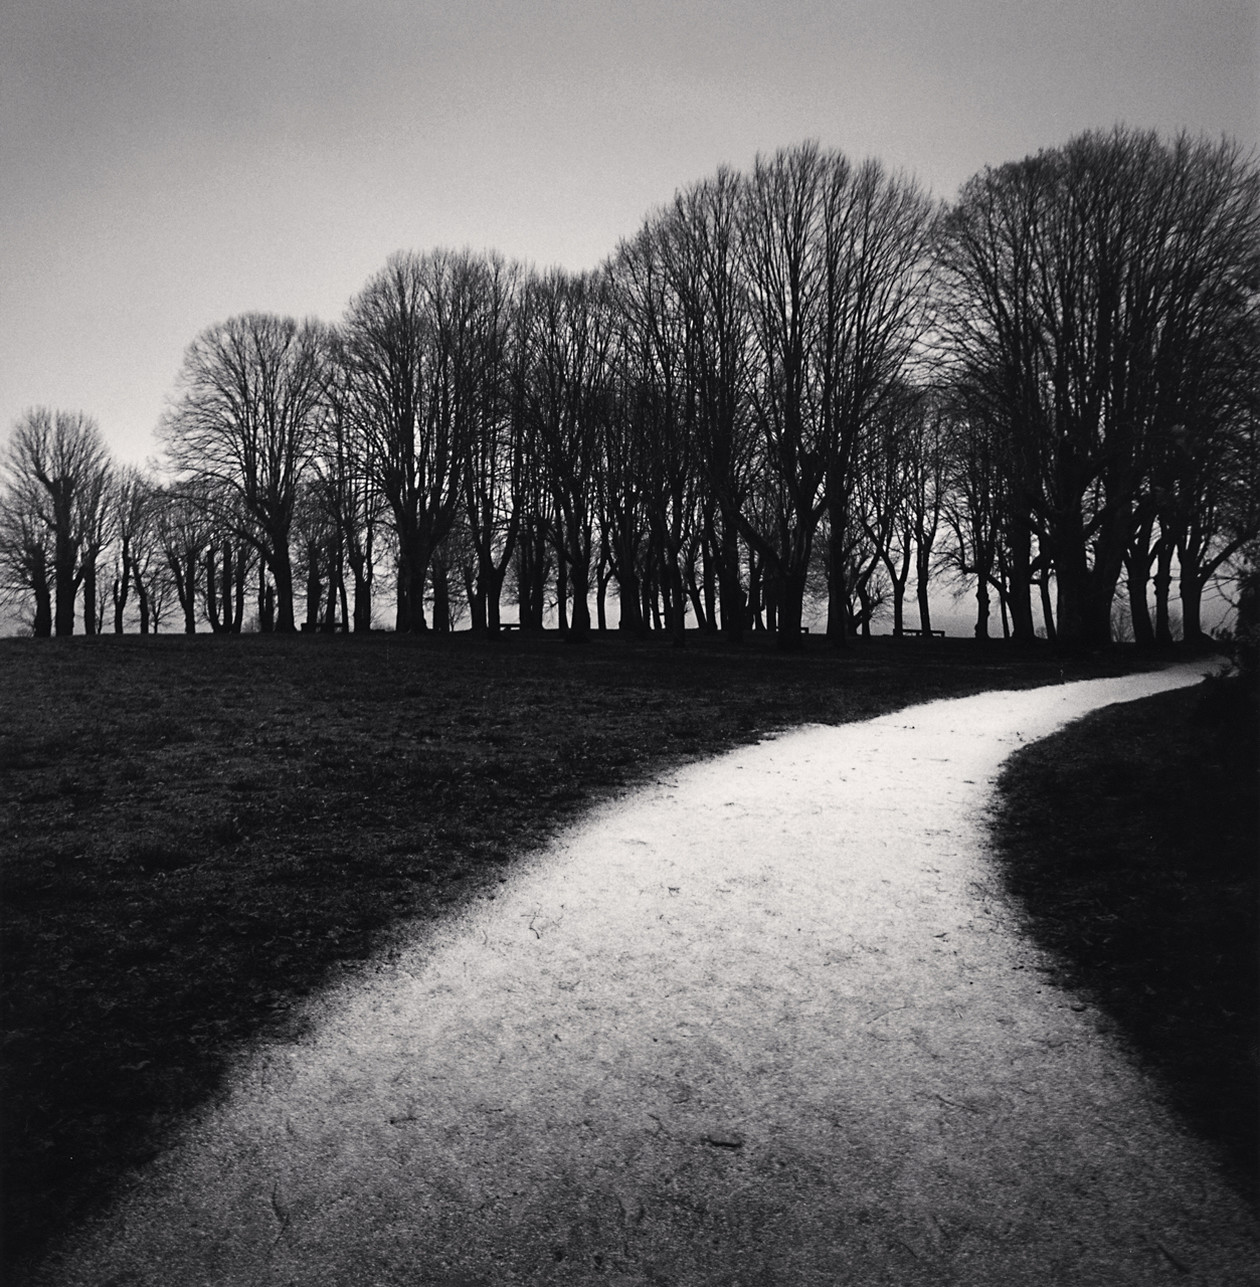 Moonlit Path, Vezelay (1998) by Michael Kenna